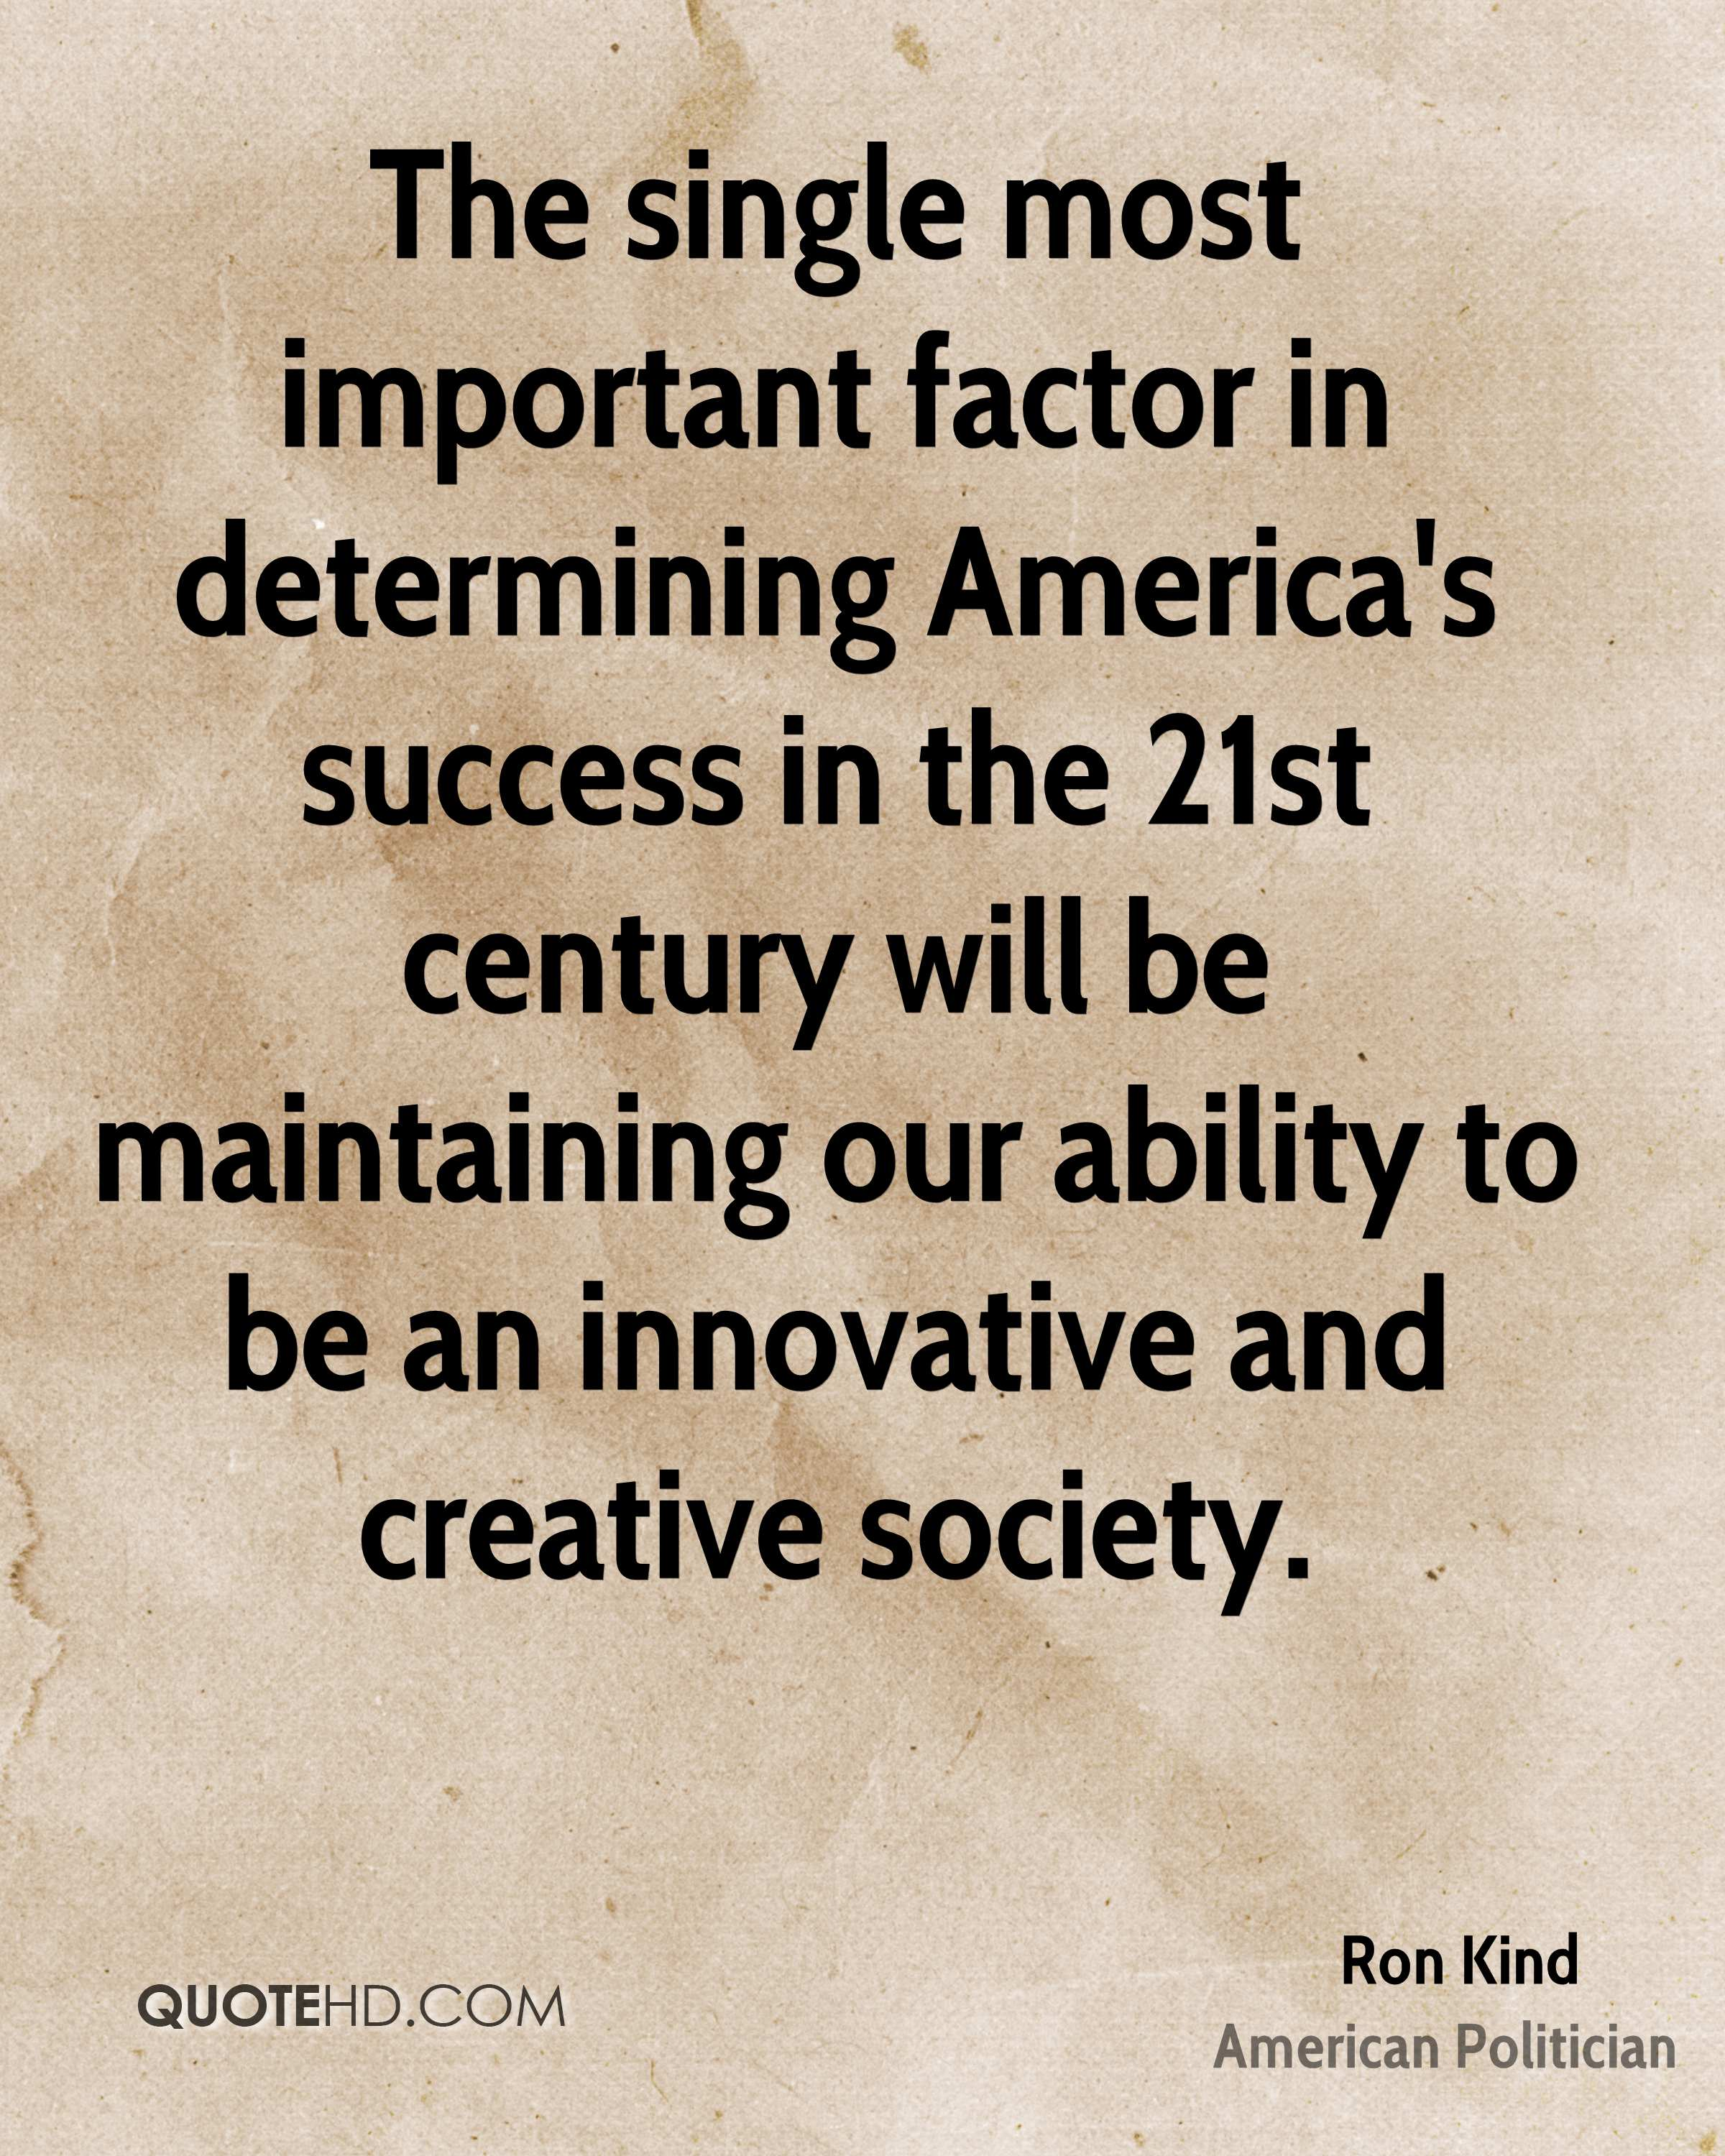 The single most important factor in determining America's success in the 21st century will be maintaining our ability to be an innovative and creative society.